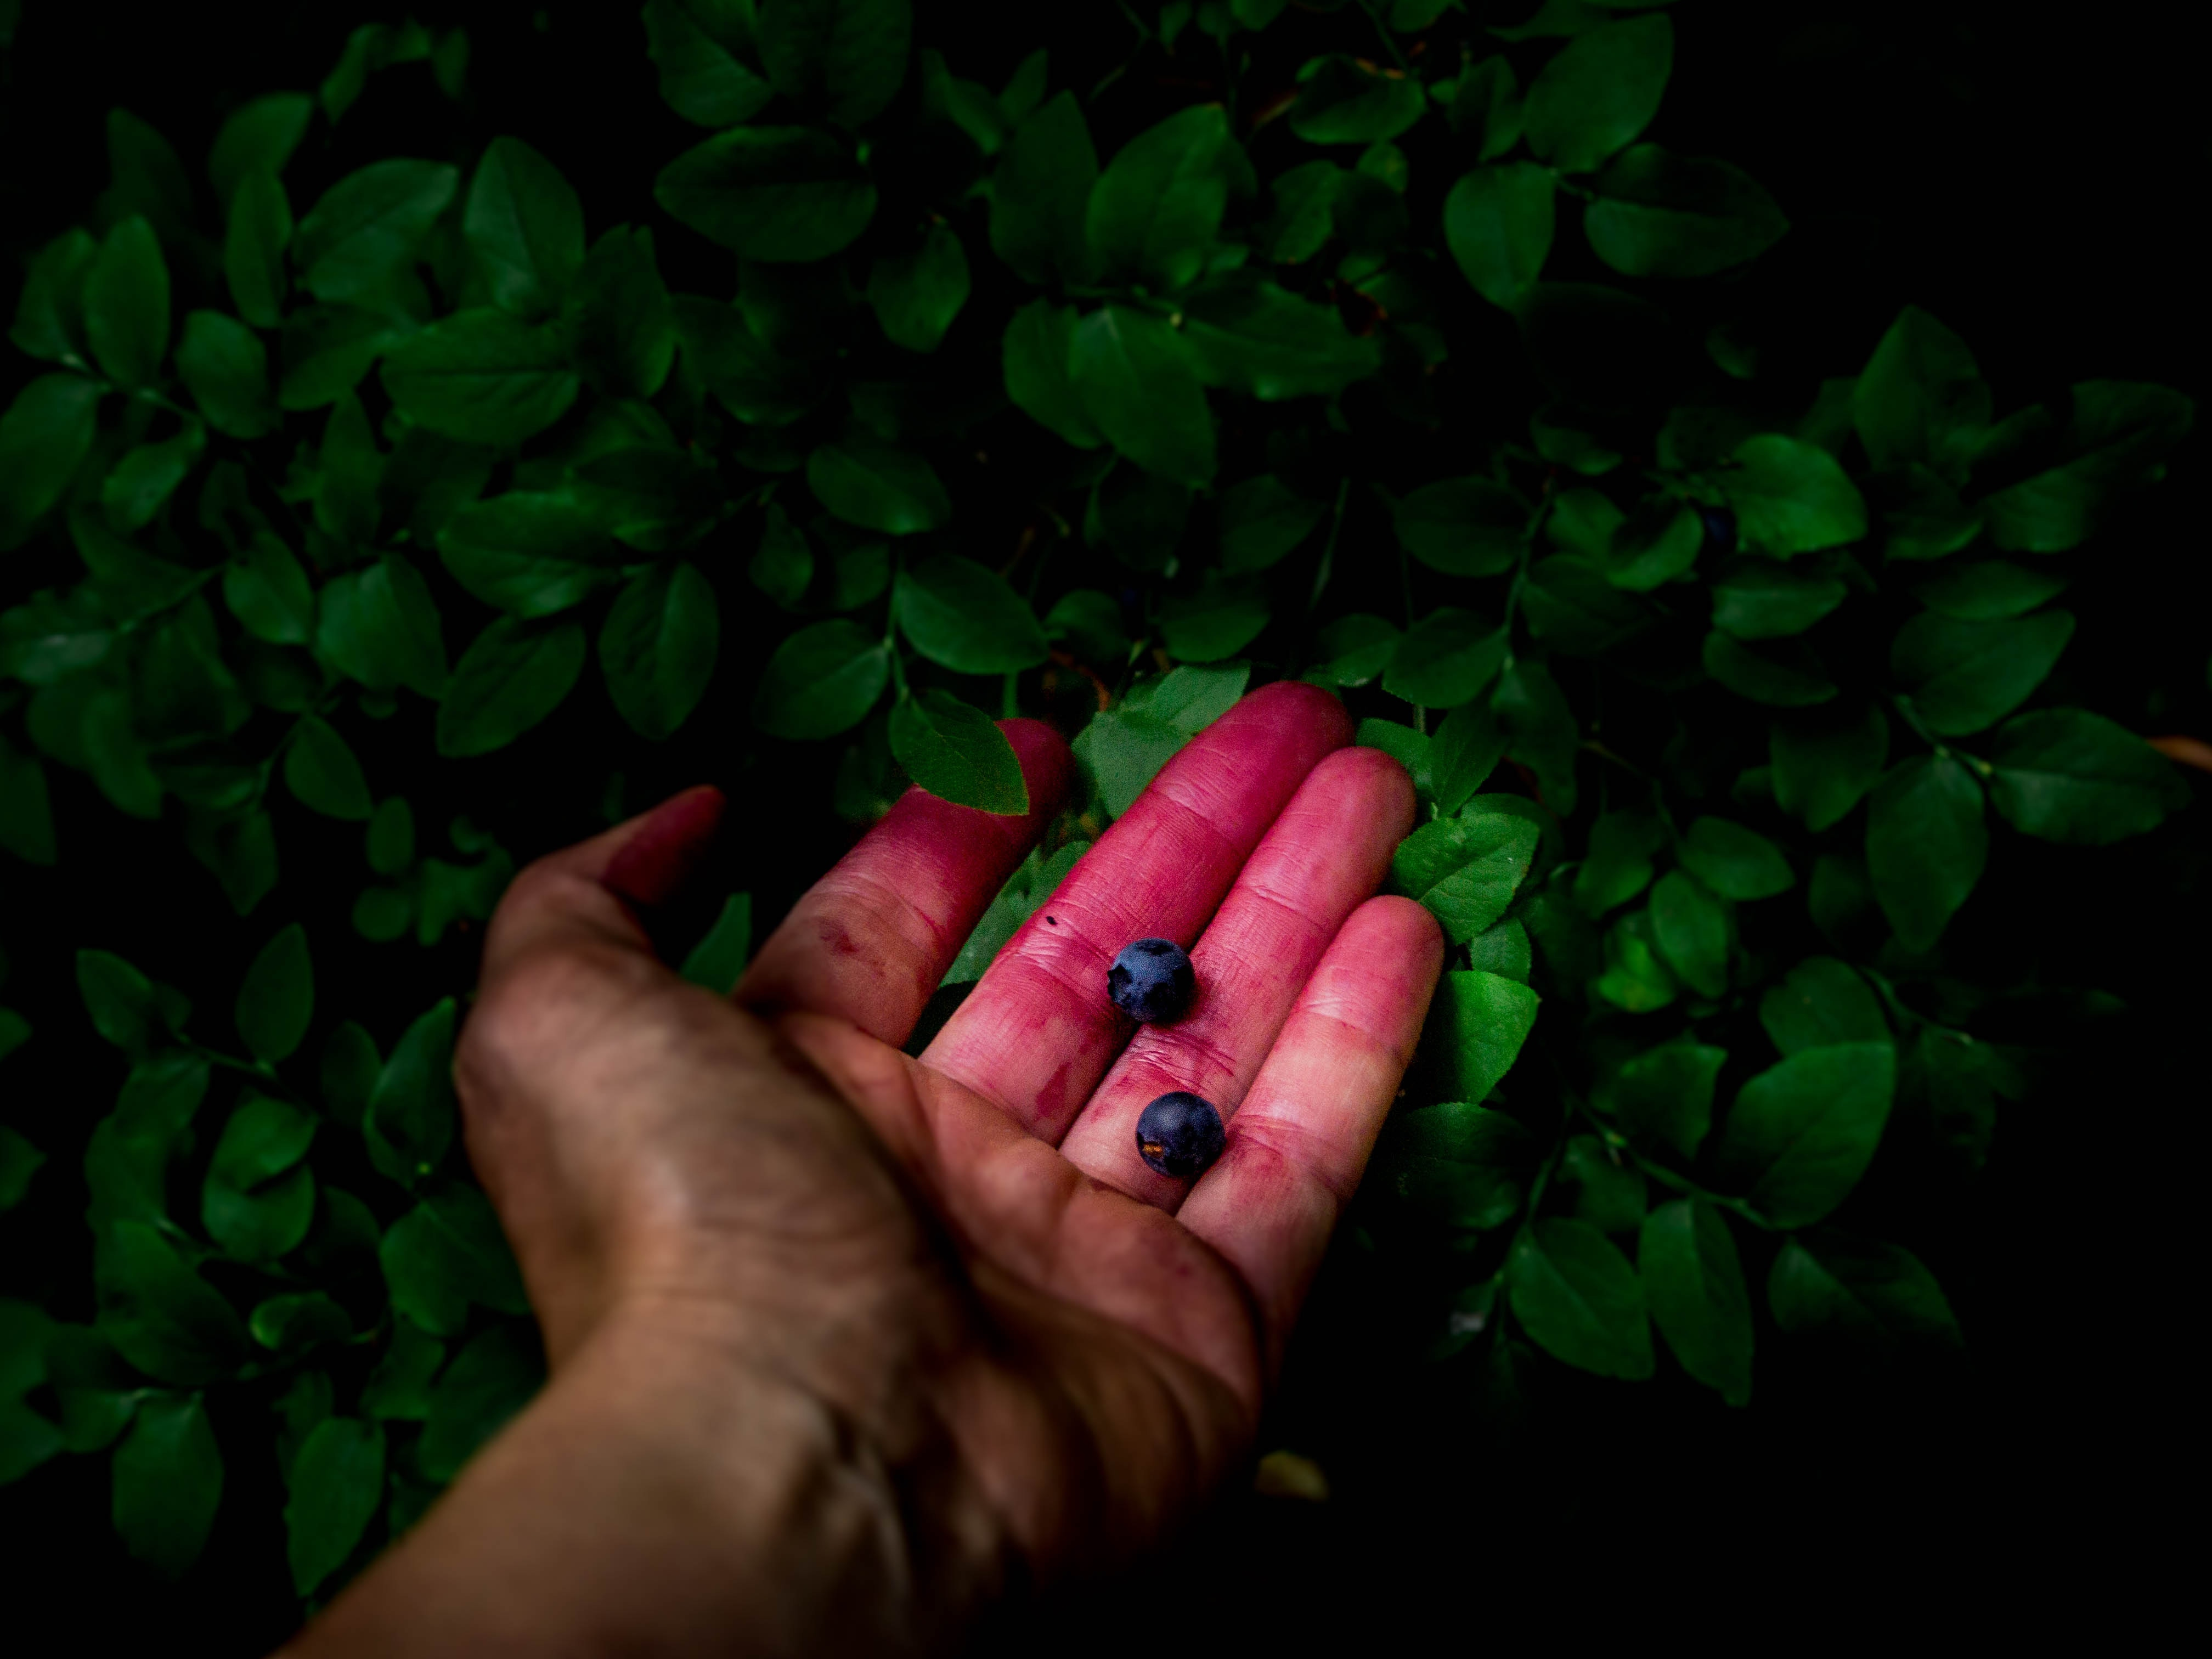 Hand Holding Blueberries in a Green Bush